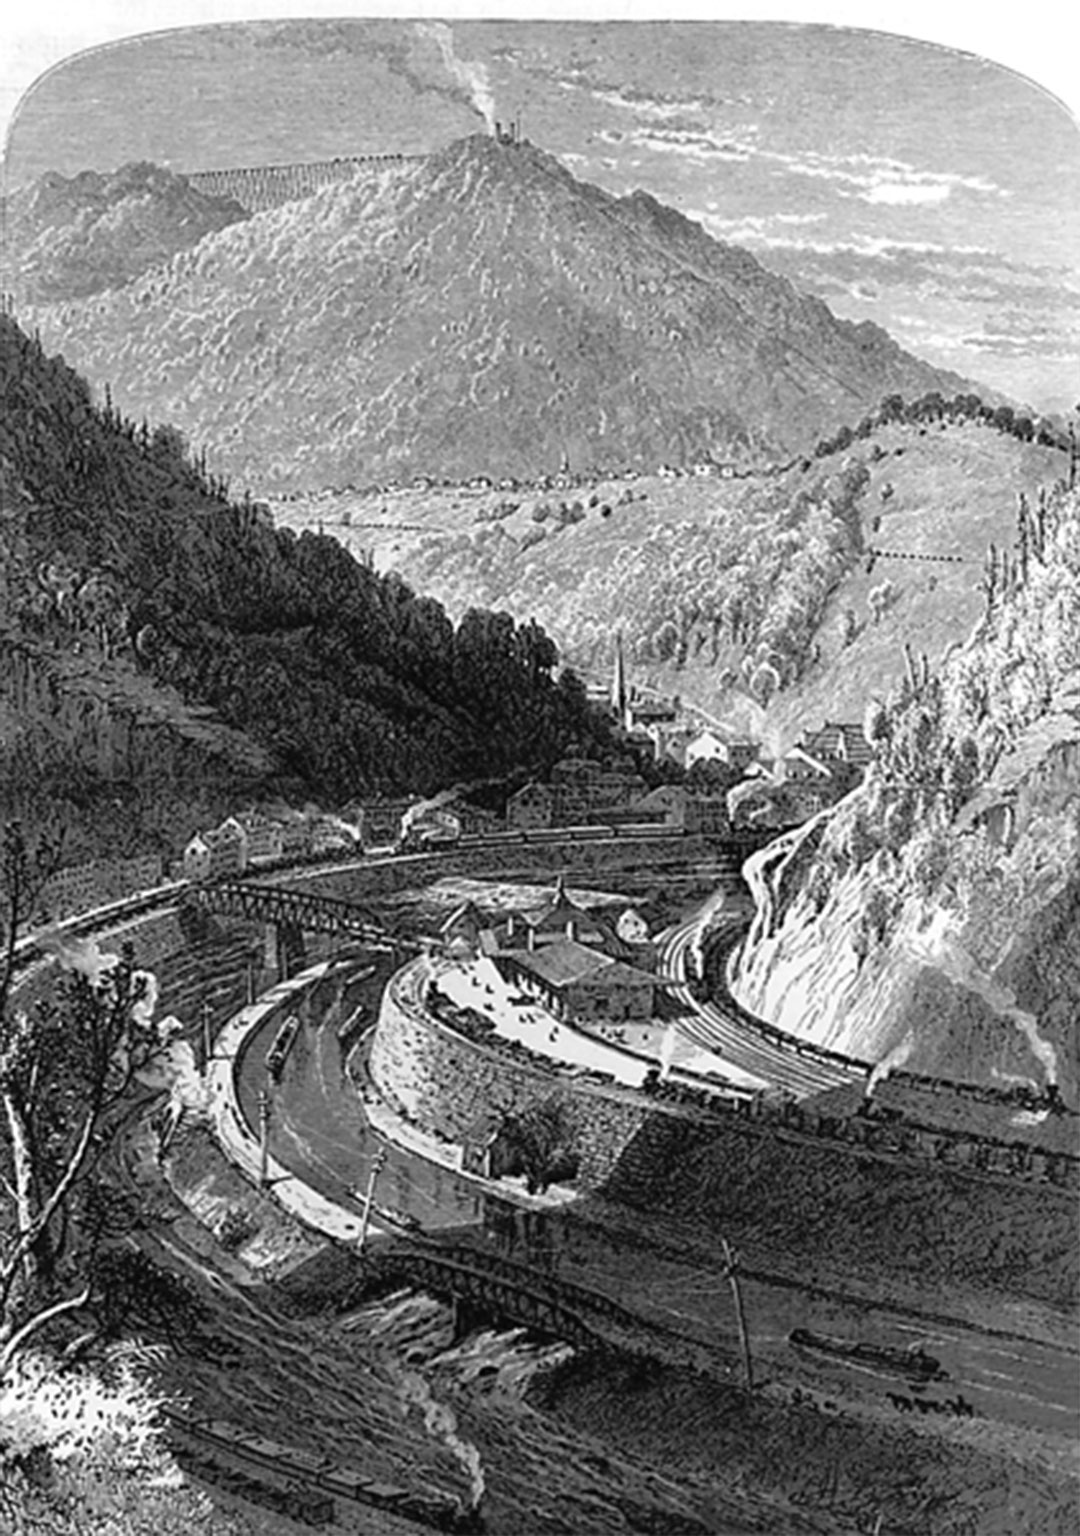 An 1860s lithograph of Mauch Chunk.